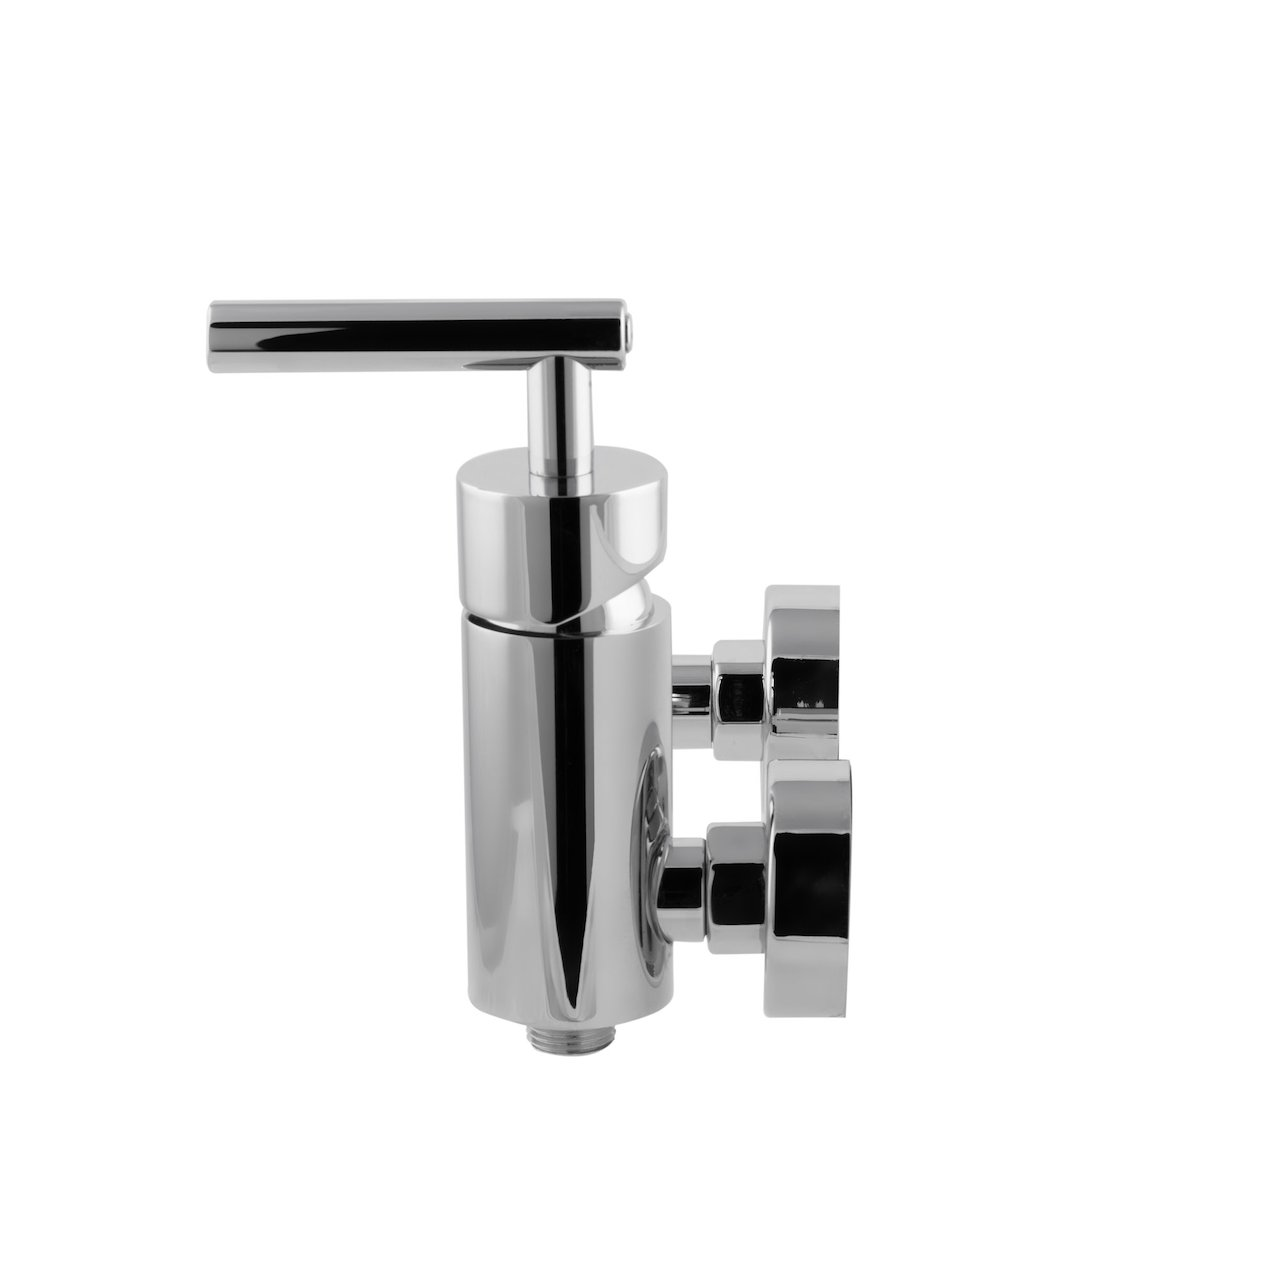 Wall shower mixer Energy - 360 - 0